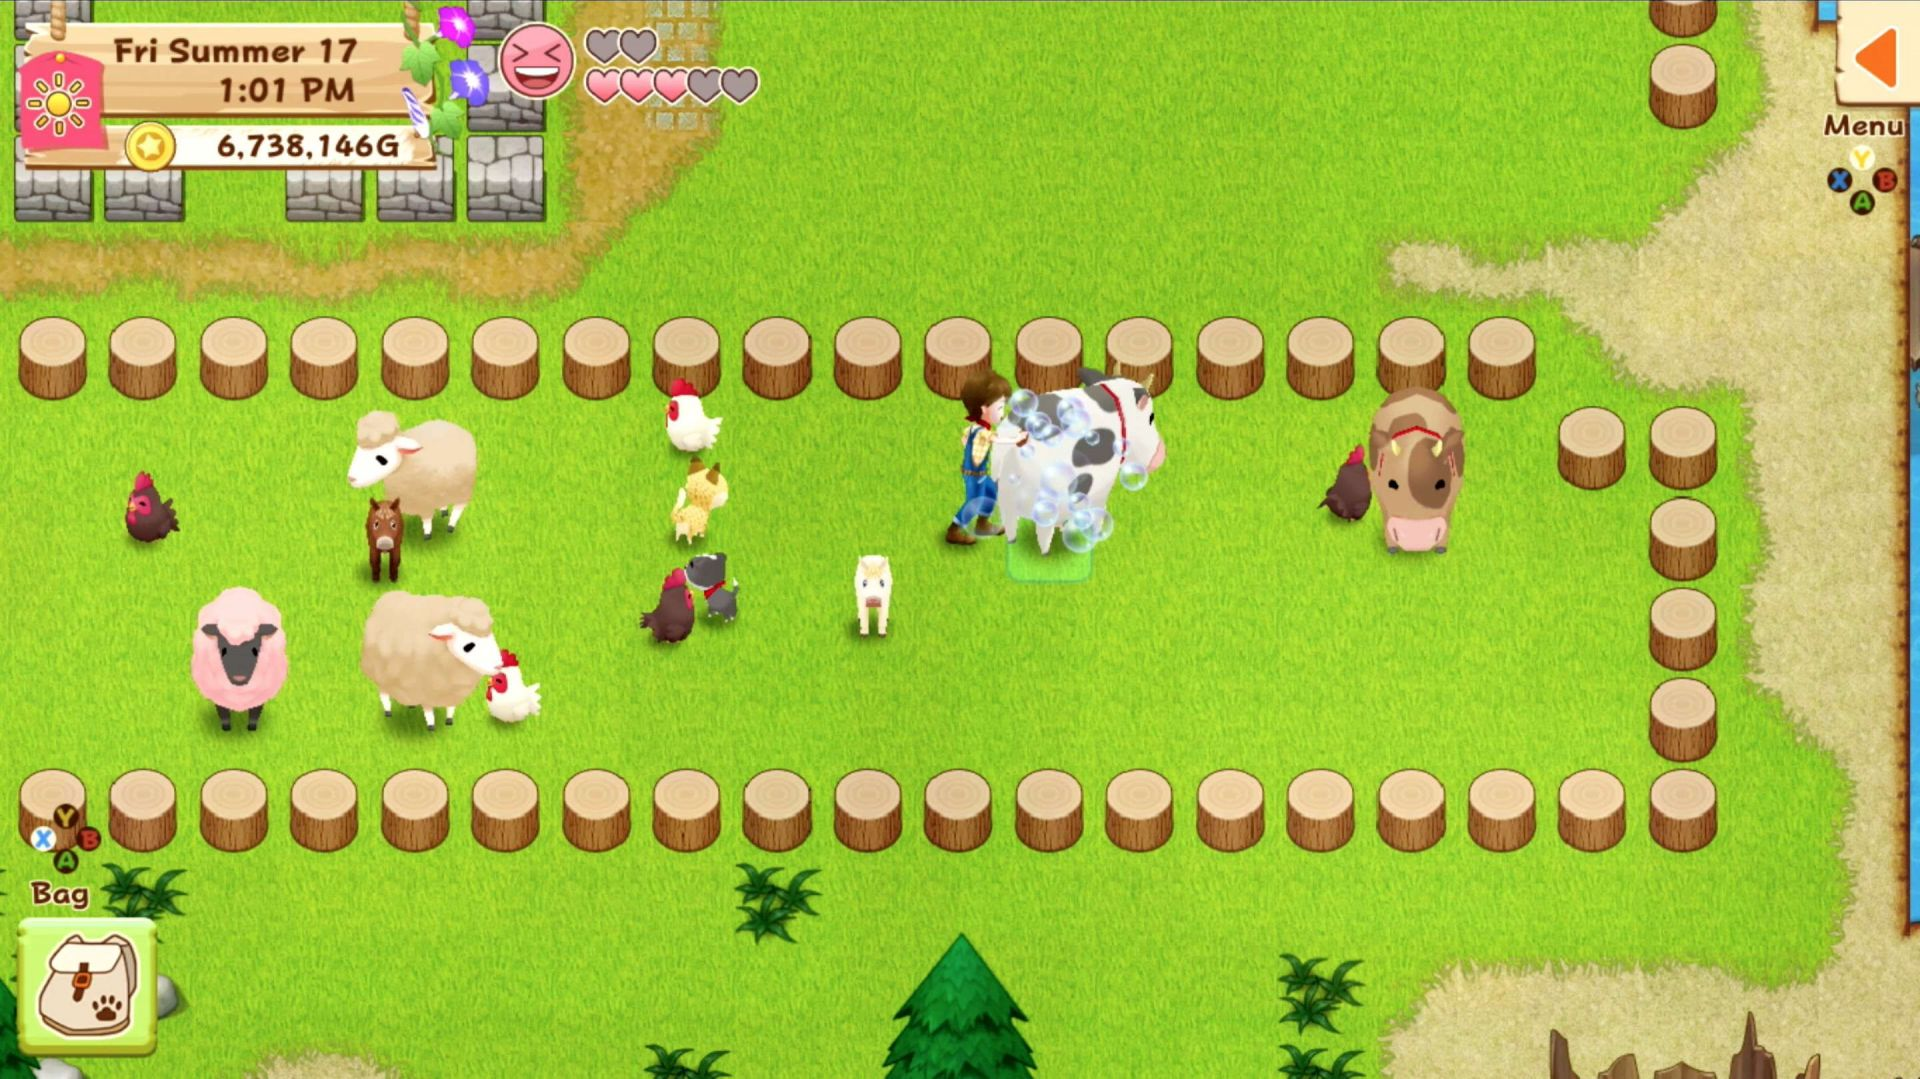 Harvest Moon: Light of Hope #5